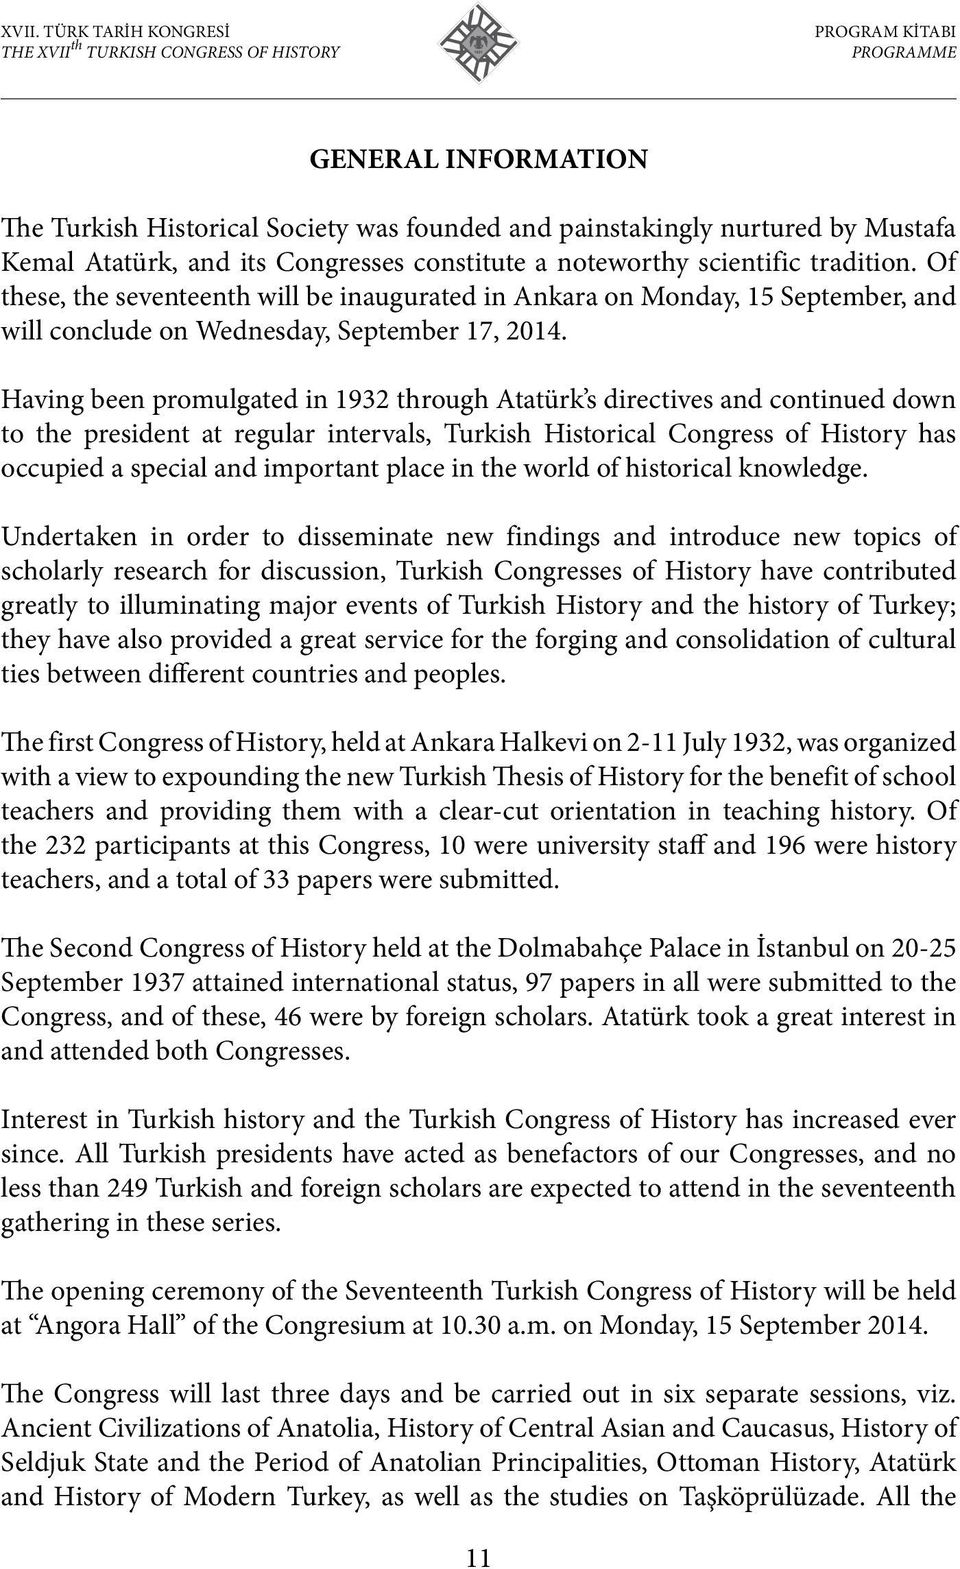 Having been promulgated in 1932 through Atatürk s directives and continued down to the president at regular intervals, Turkish Historical Congress of History has occupied a special and important